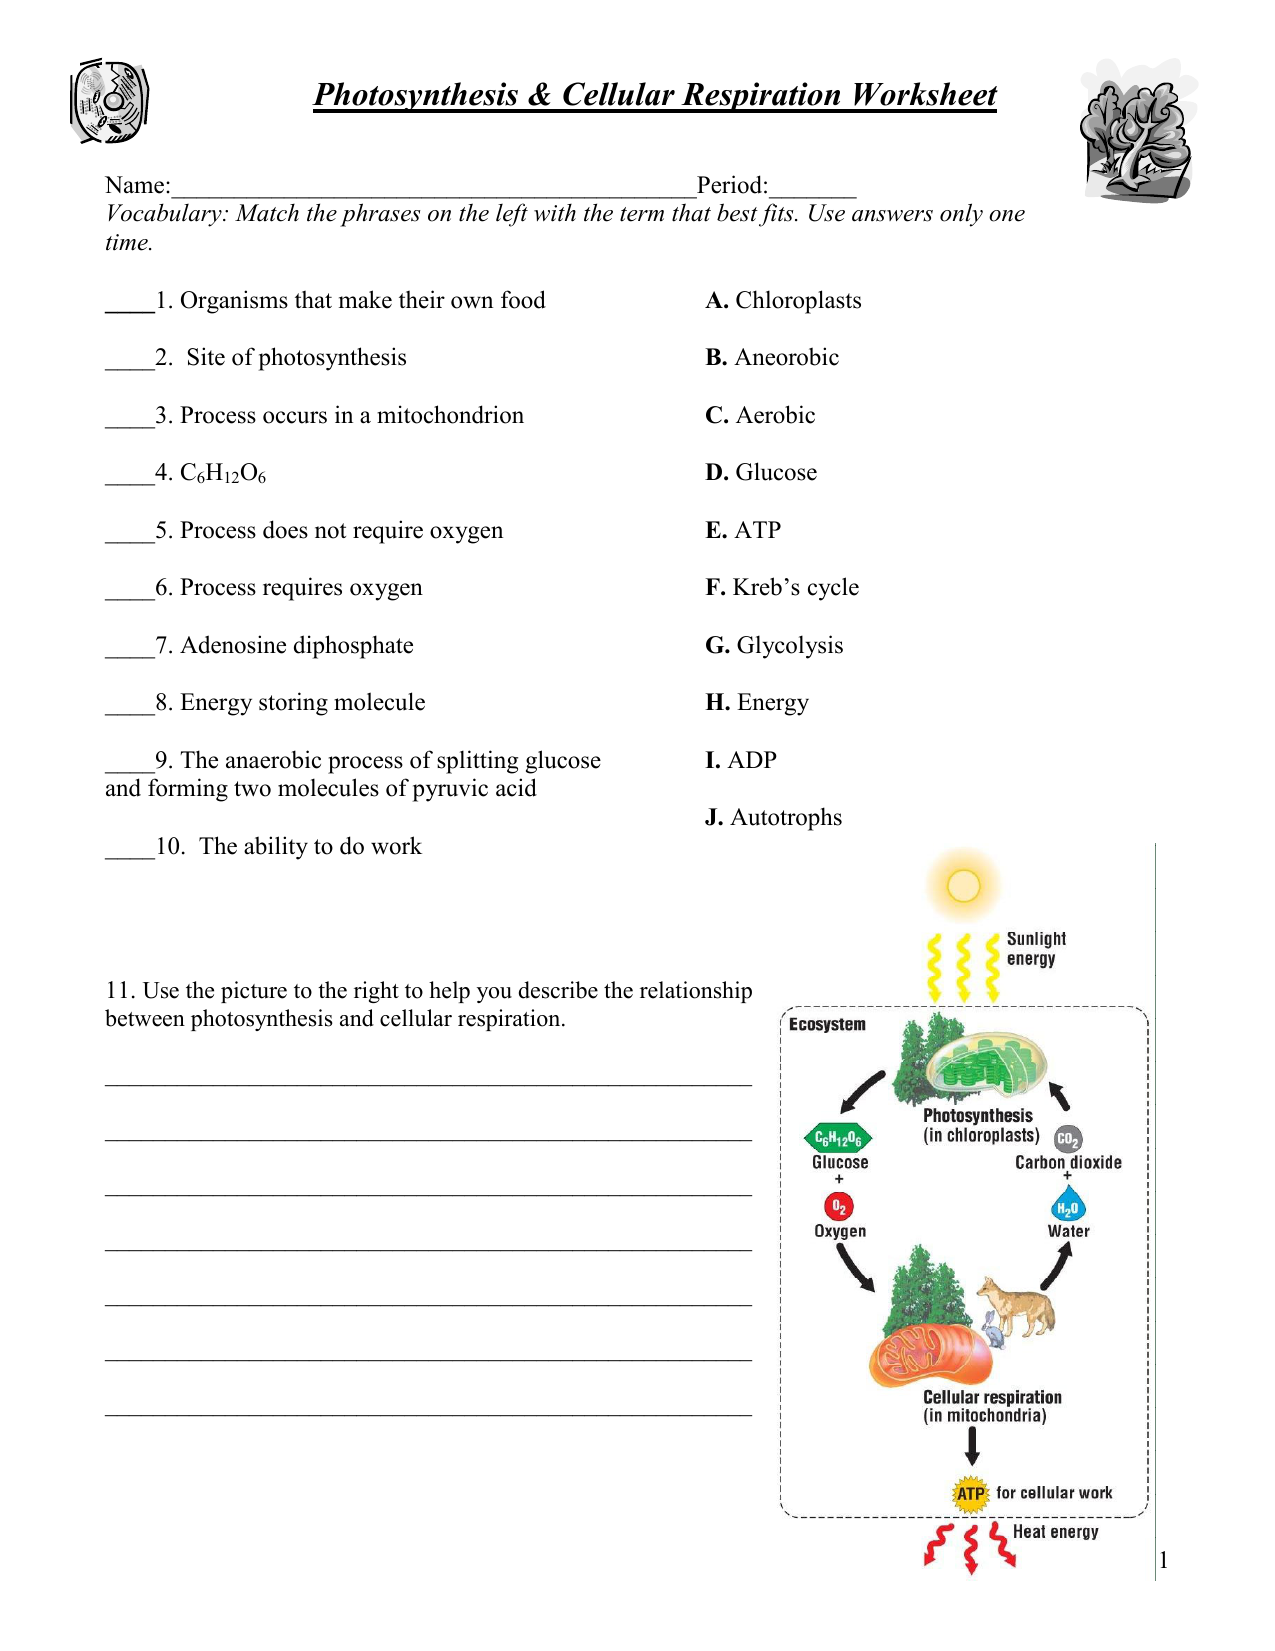 Photosynthesis & respiration worksheet